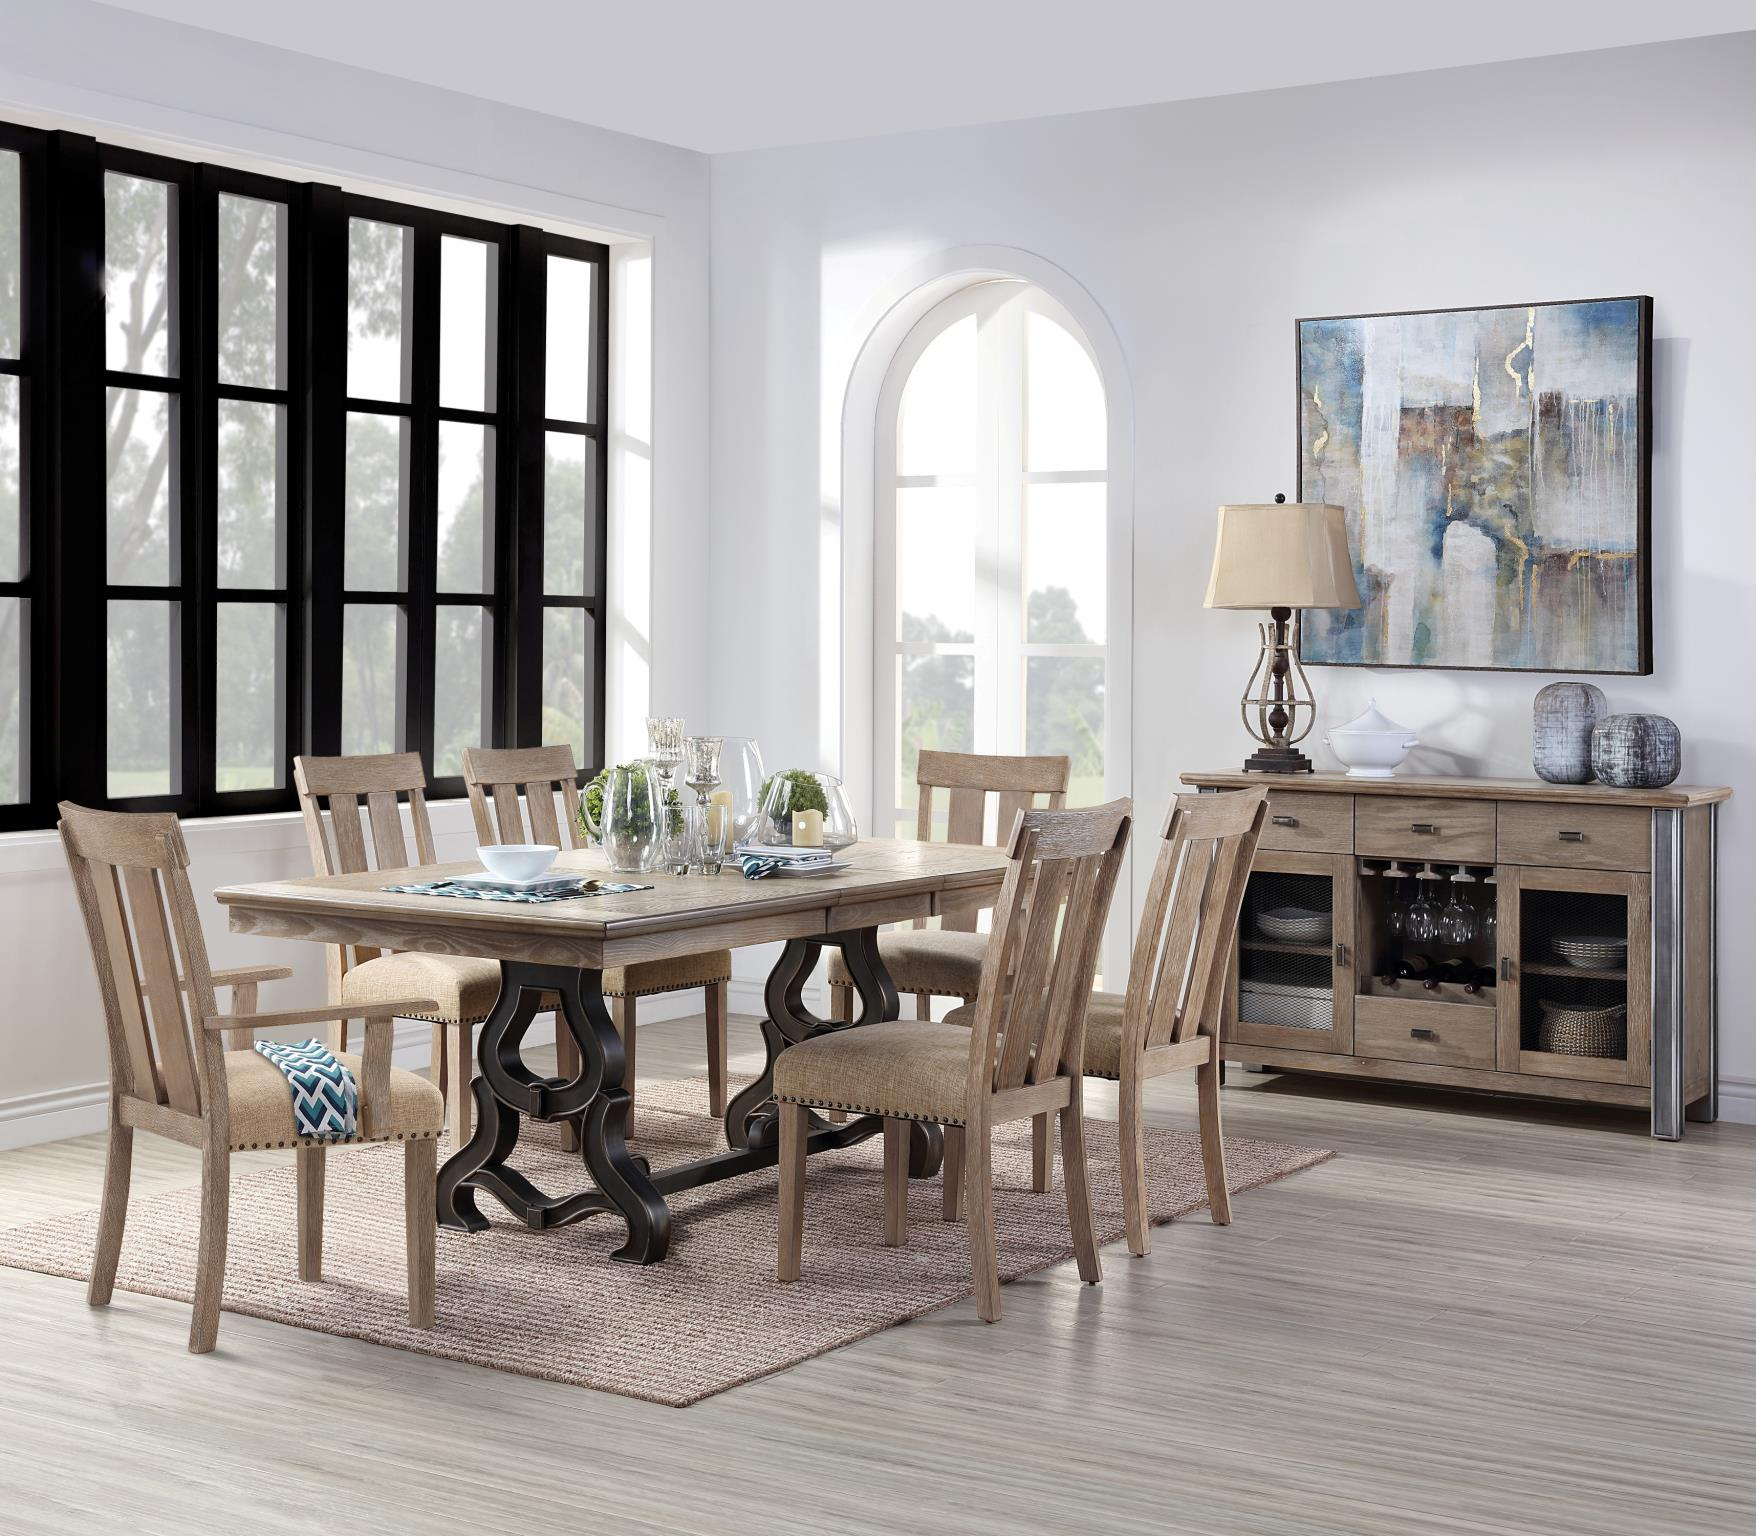 Complete Dining Table Set w/ Slatted Back Side and Arm Chairs